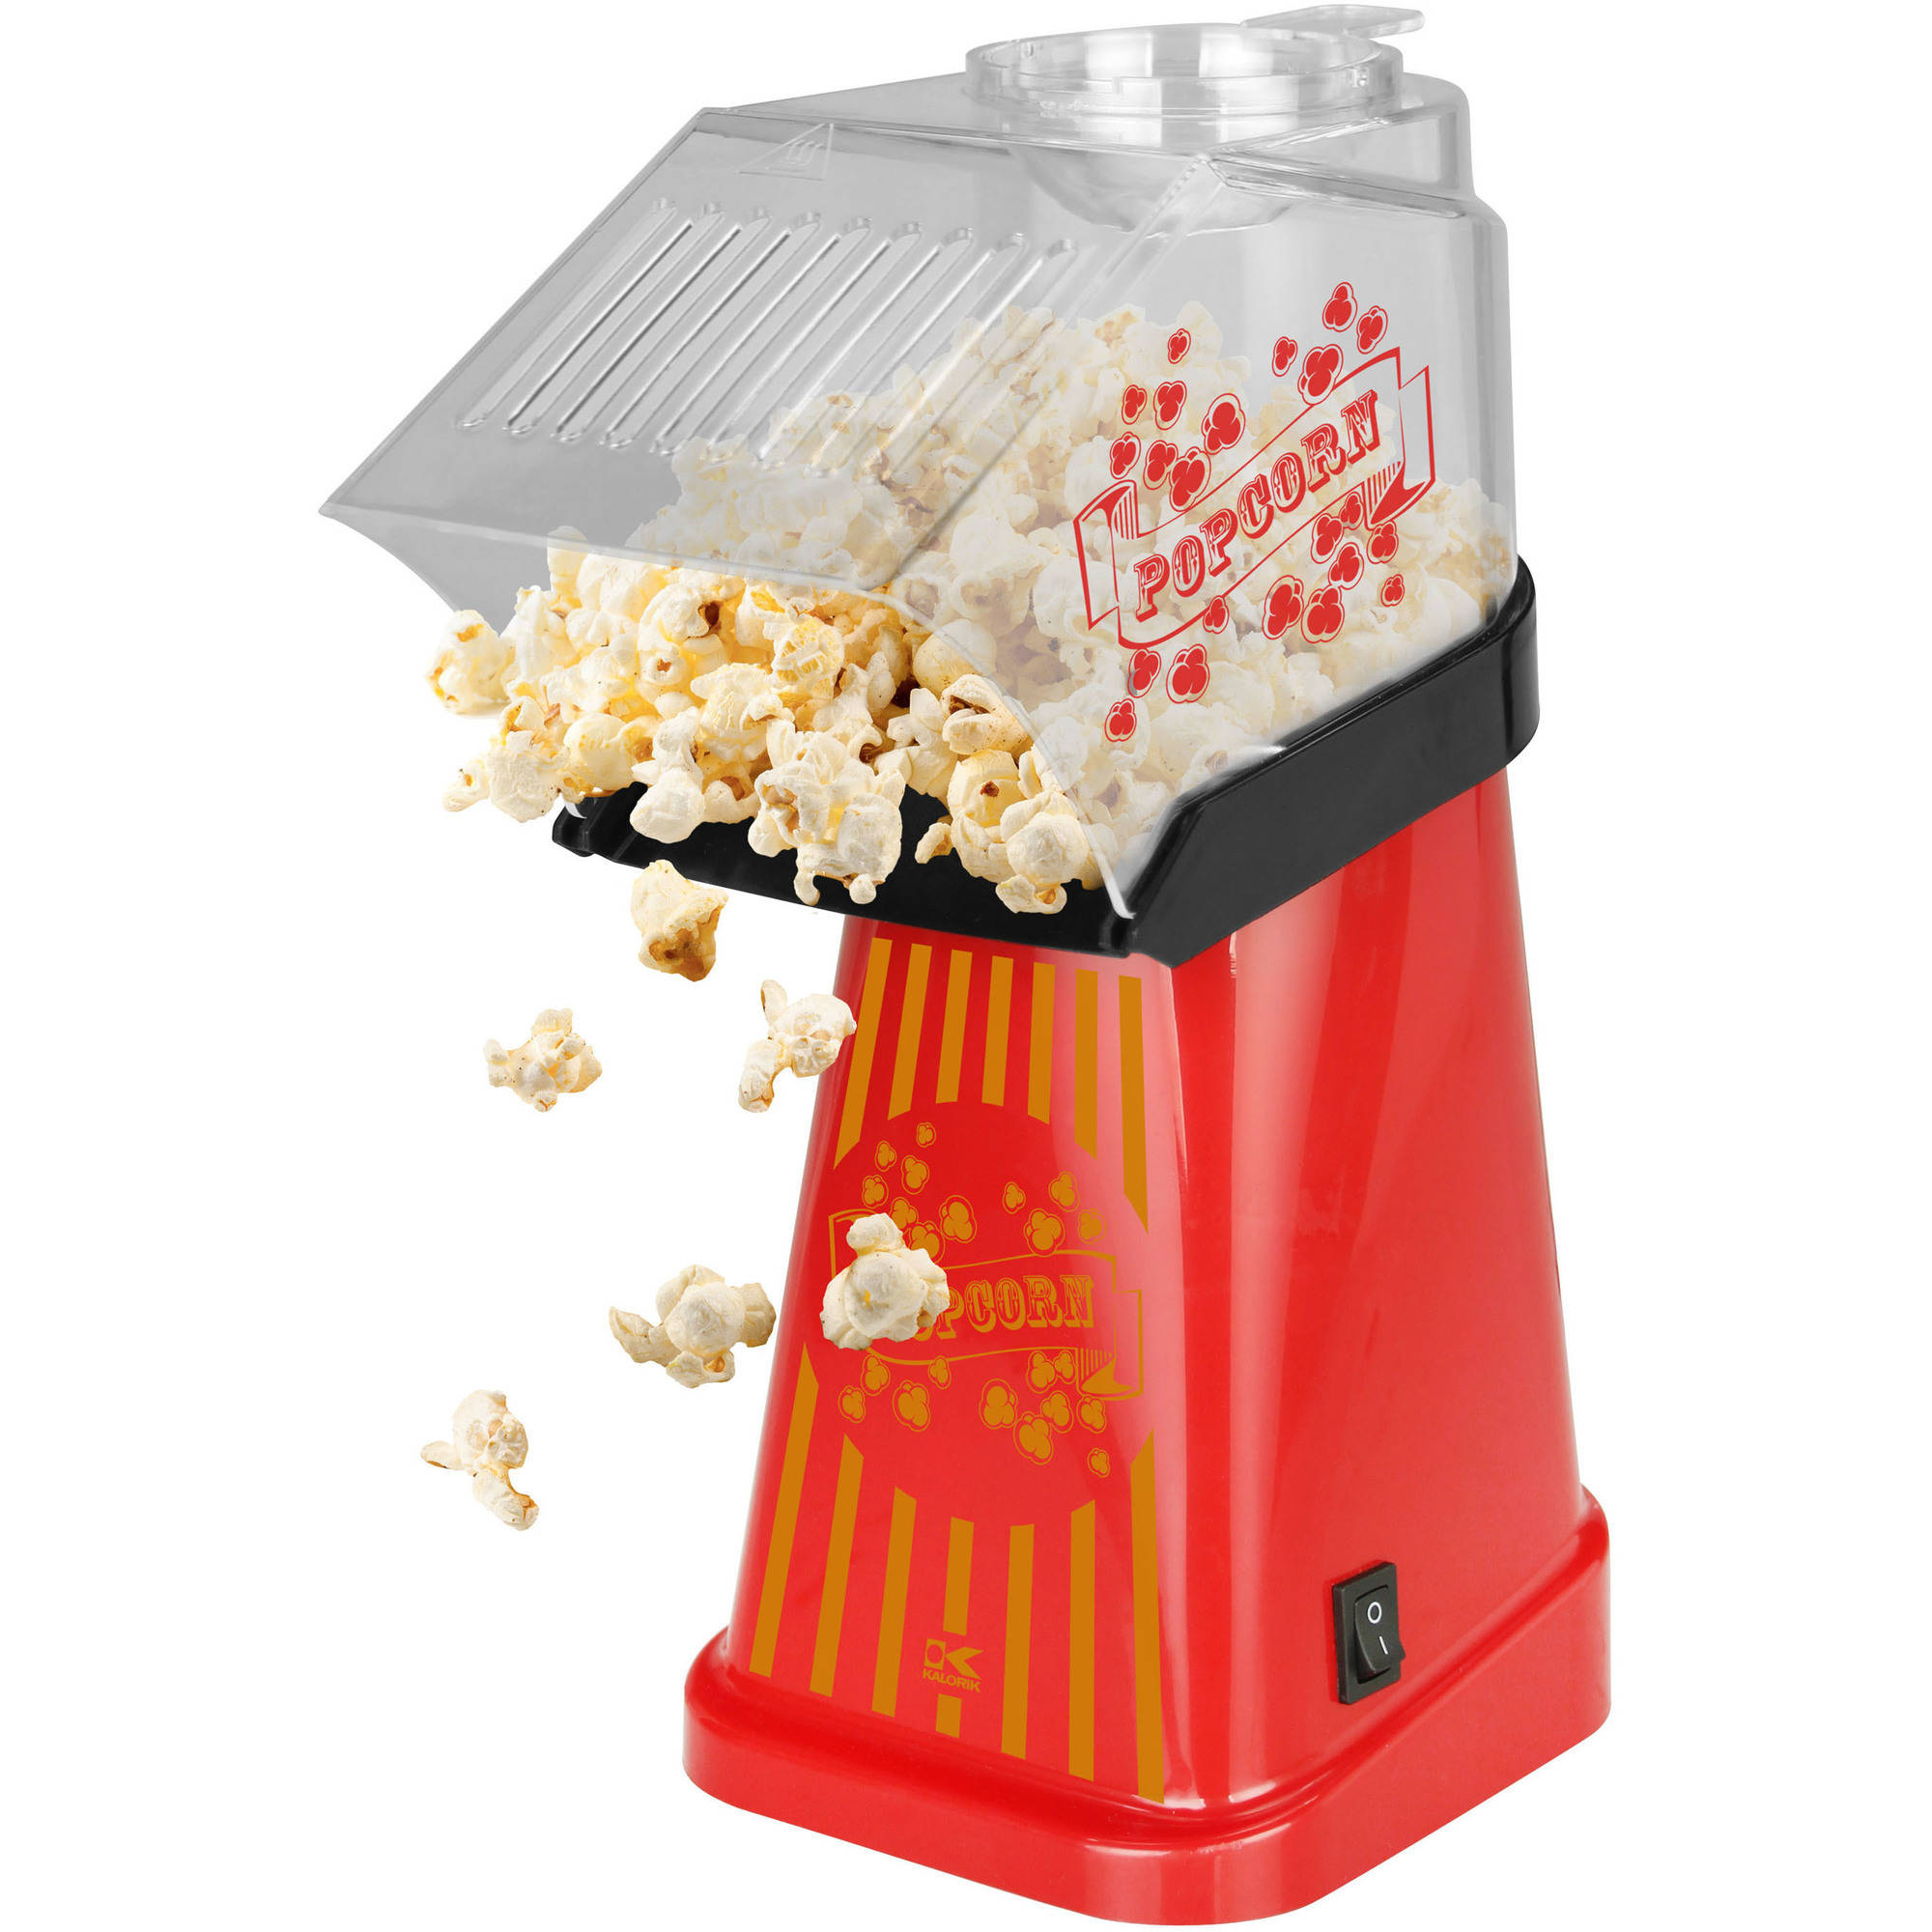 Kalorik Healthy Hot Air Popcorn Maker